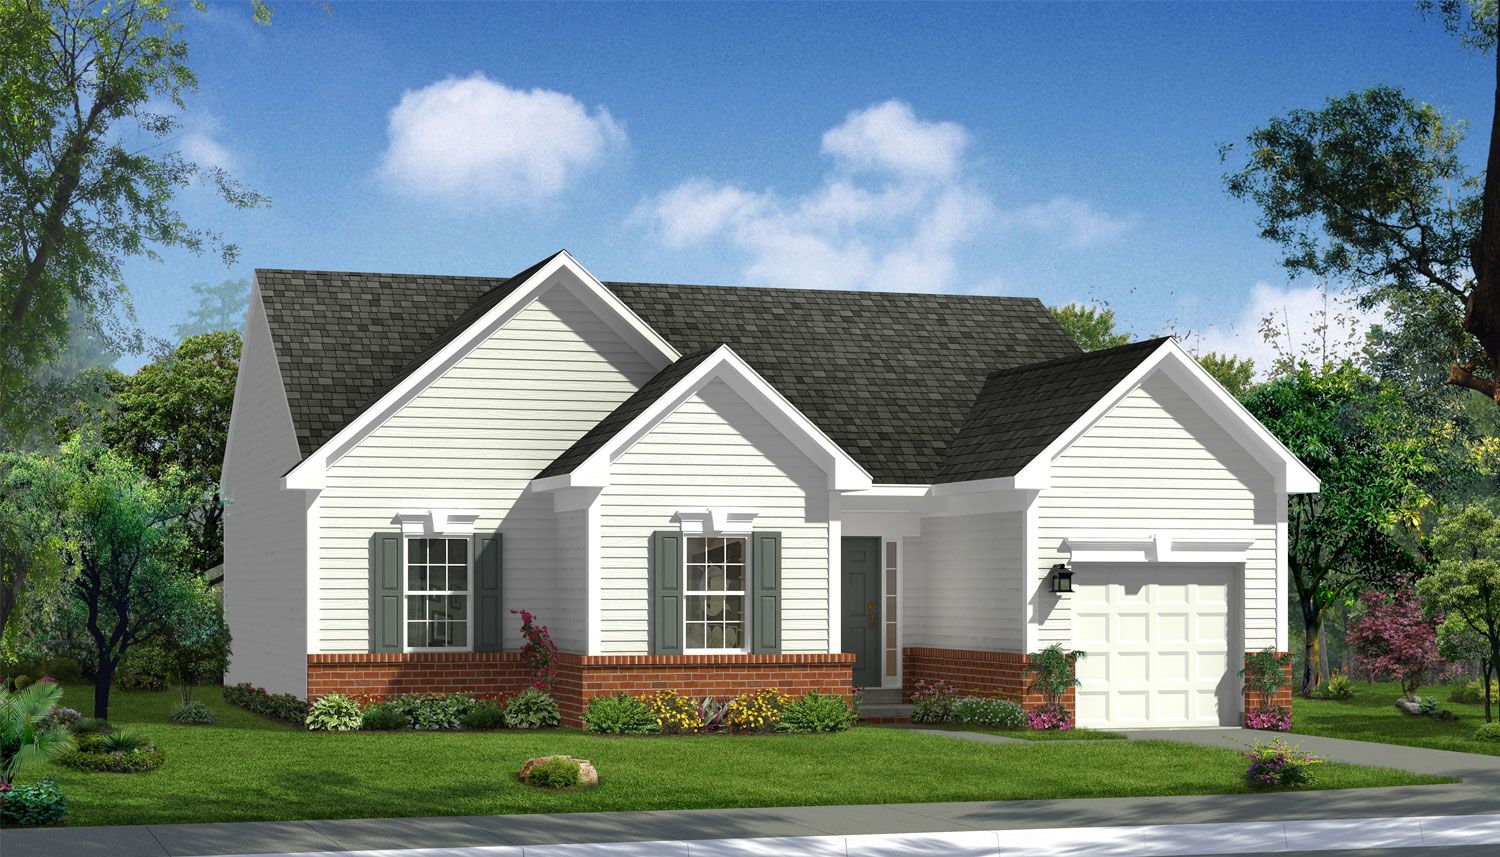 Single Family for Sale at Canterbury Woods - Wyatt Ii 200 Woodbury Dr Fairmont, West Virginia 26554 United States